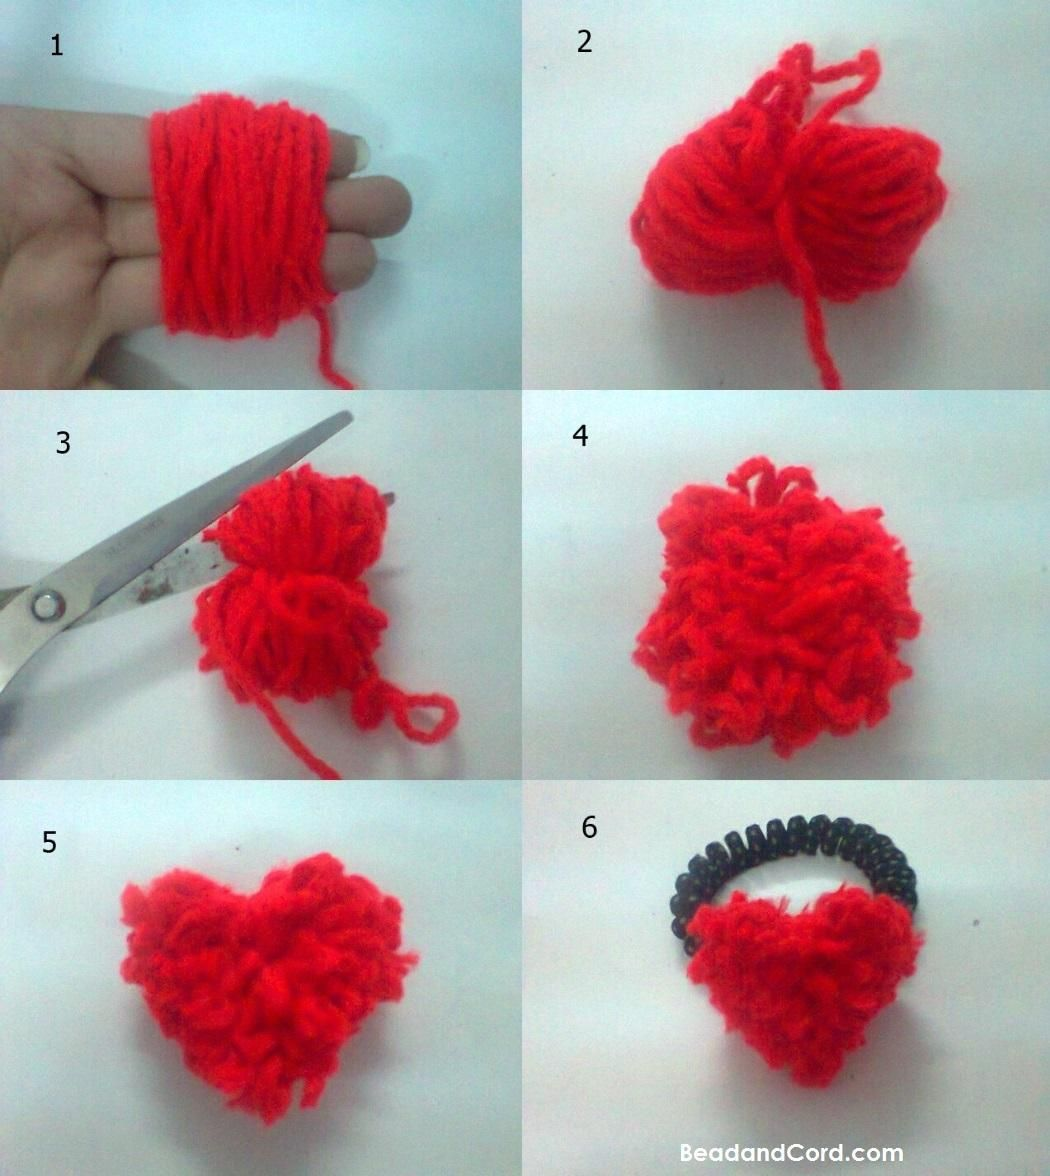 DIY Hair Accessories : How to Make a Super Easy Heart Shape Yarn Hair Tie in Minutes